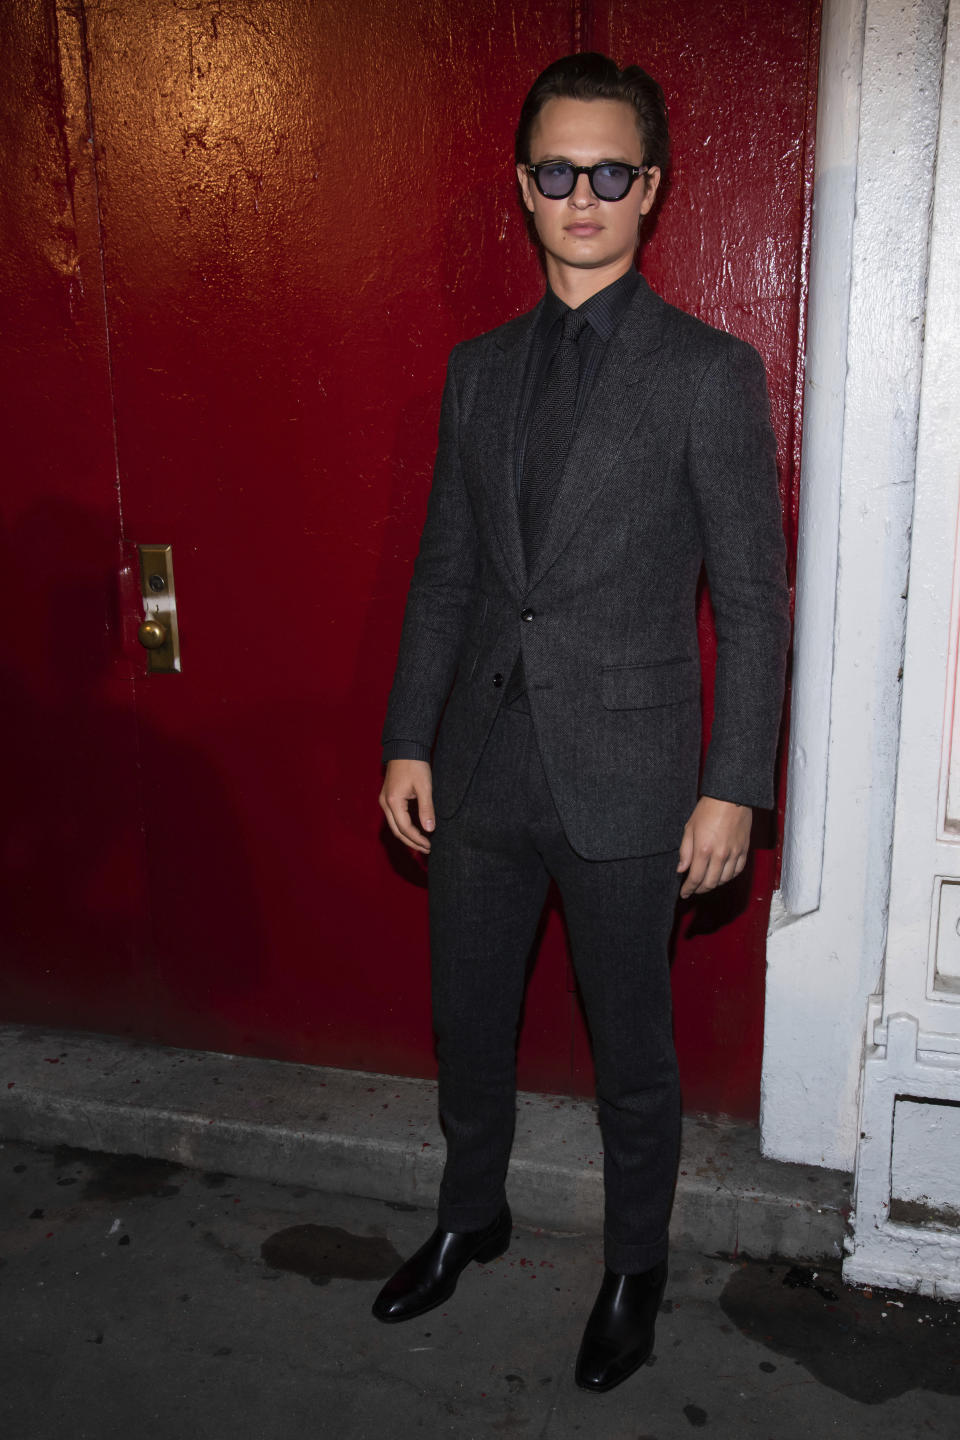 Ansel Elgort arrives to the Tom Ford show during Fashion Week on Monday, Sept. 9, 2019 in New York. (Photo by Charles Sykes/Invision/AP)